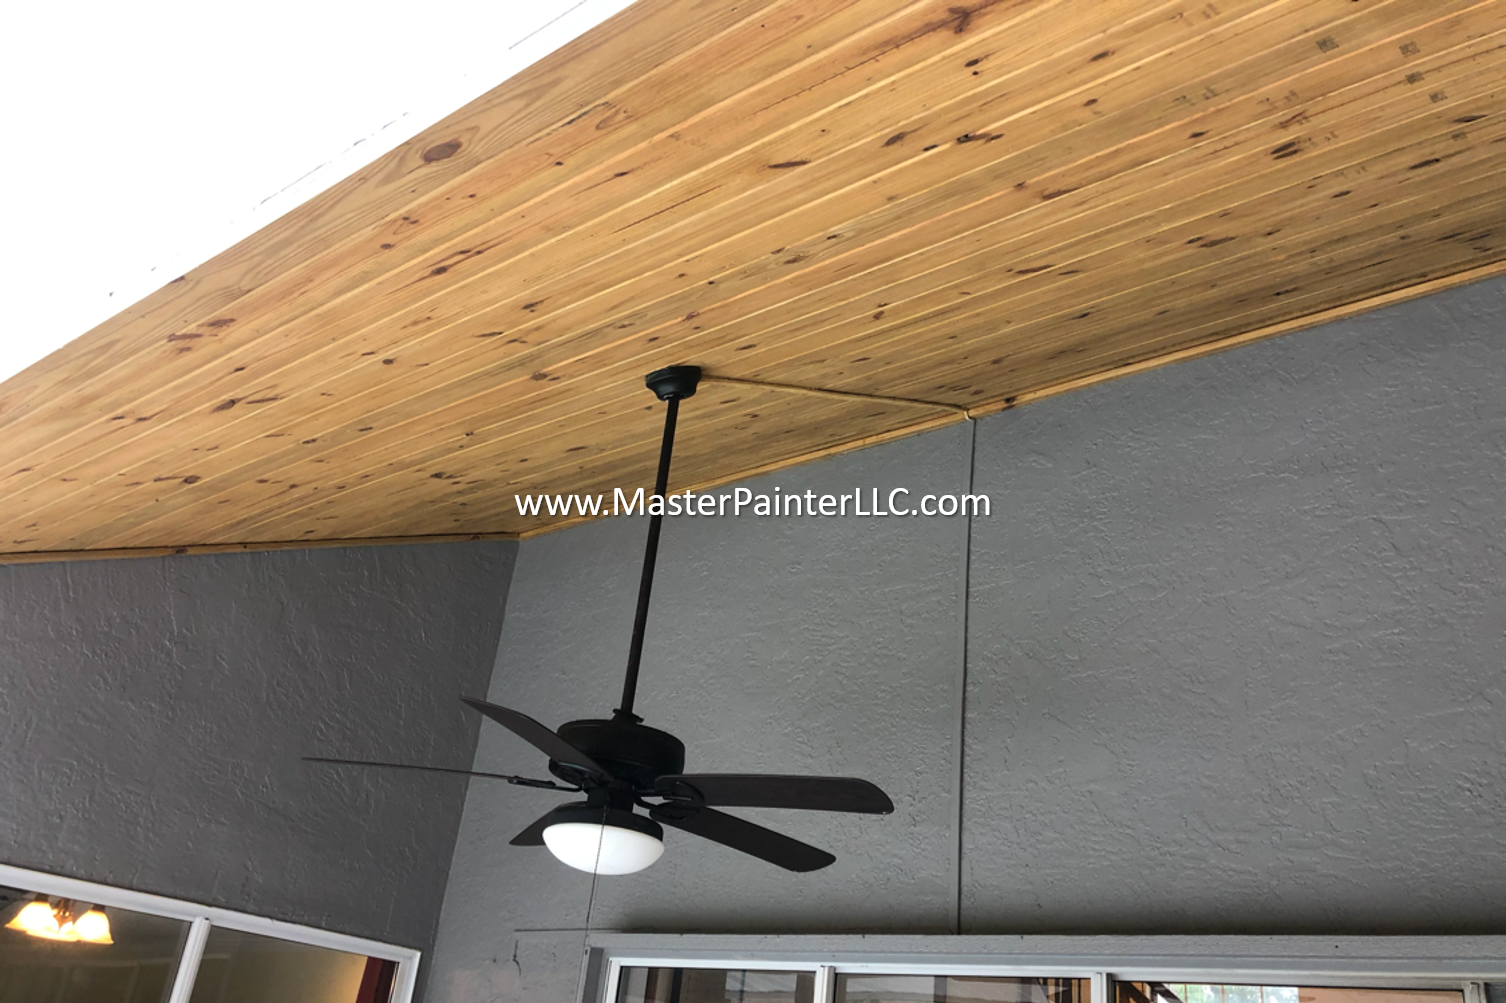 Porch wood ceiling stained